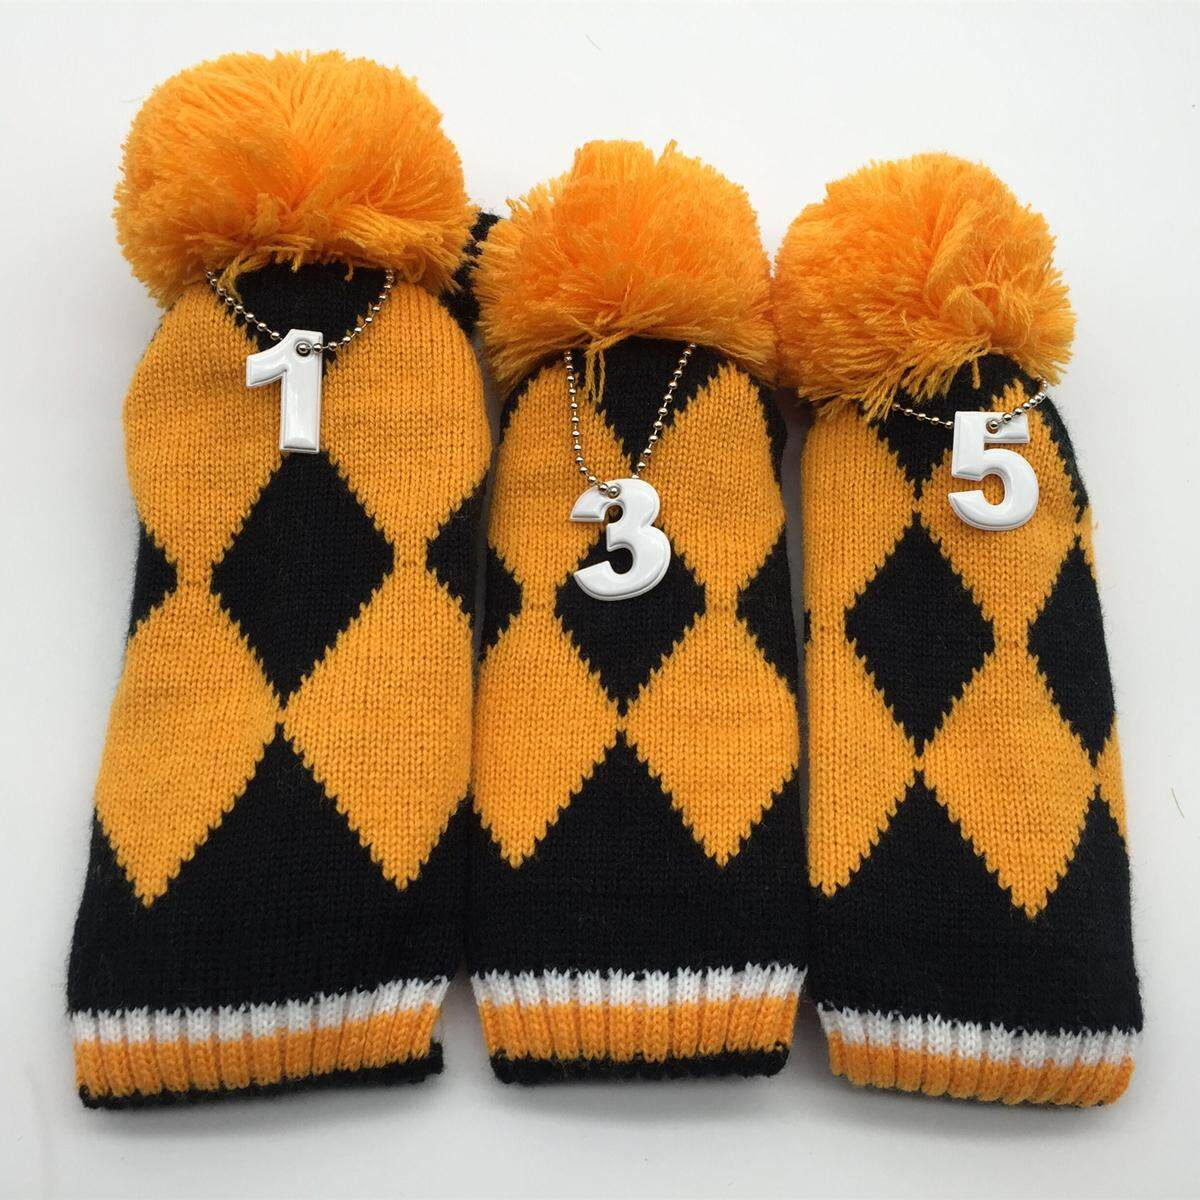 Knitted Golf Headcover Pom Pom Woods Headcover Set Fit Taylormade Callaway Ping By Freebang.